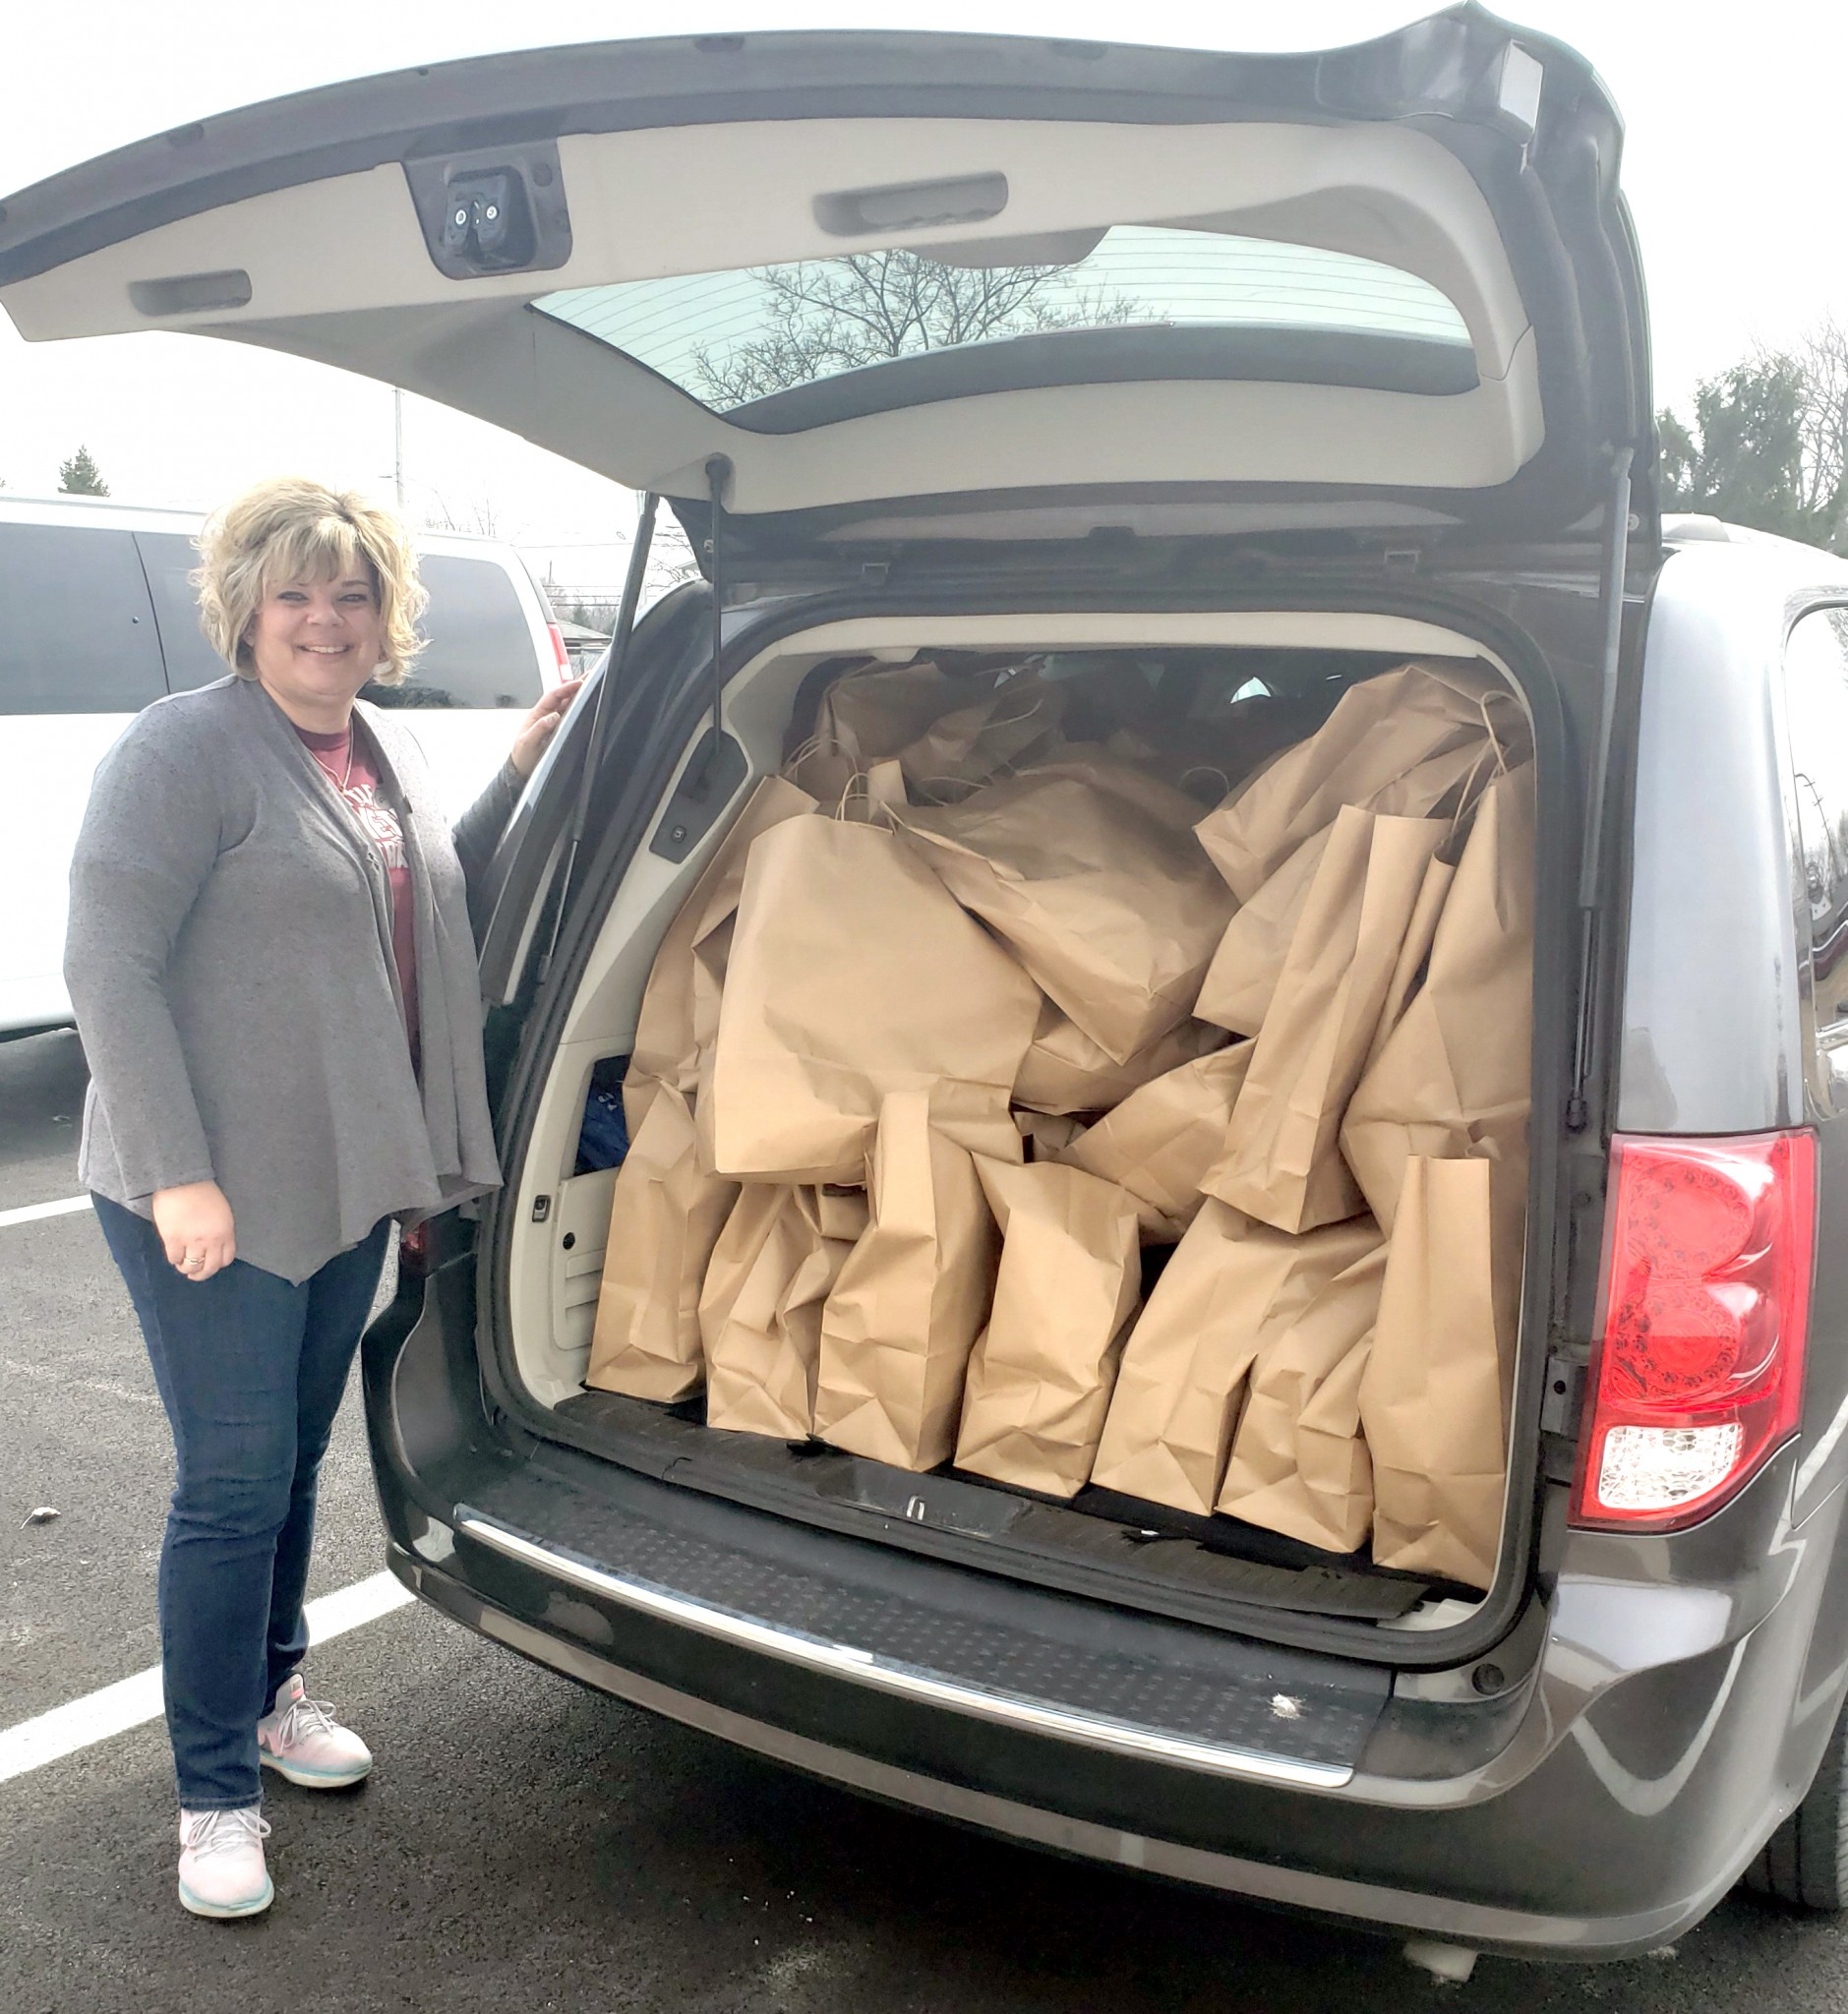 Melissa Antry, staff member at the Otttawa County Advocacy Center and coordinator of the mentoring program at Genoa Schools, prepares to deliver meals for distribution to Genoa students over spring break. (Submitted photo)